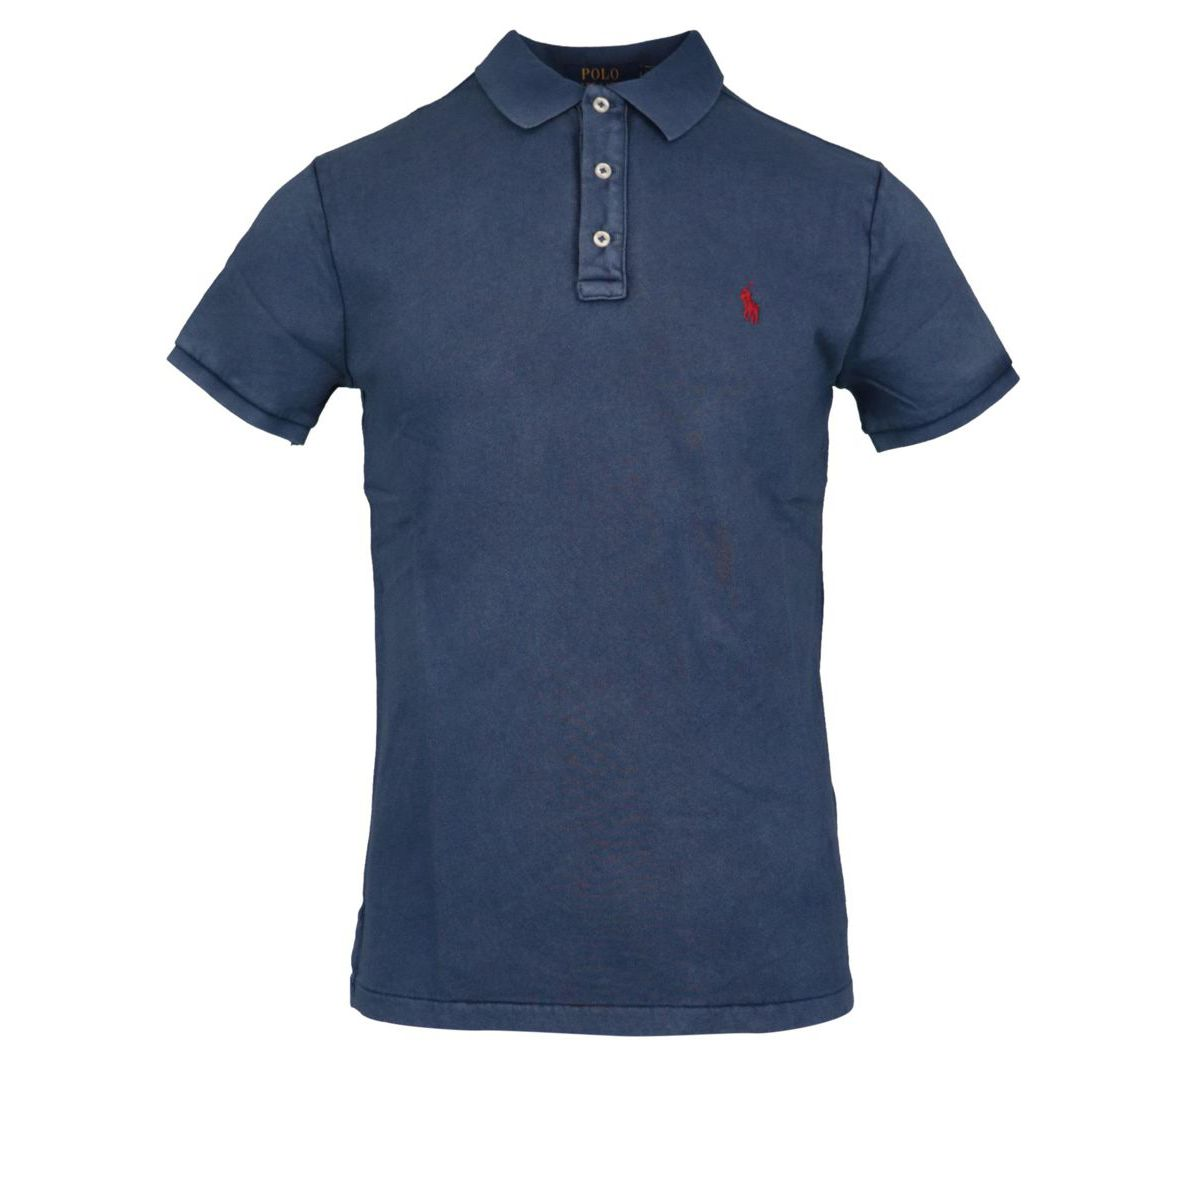 Three button cotton polo shirt with contrasting logo embroidery Navy Polo Ralph Lauren